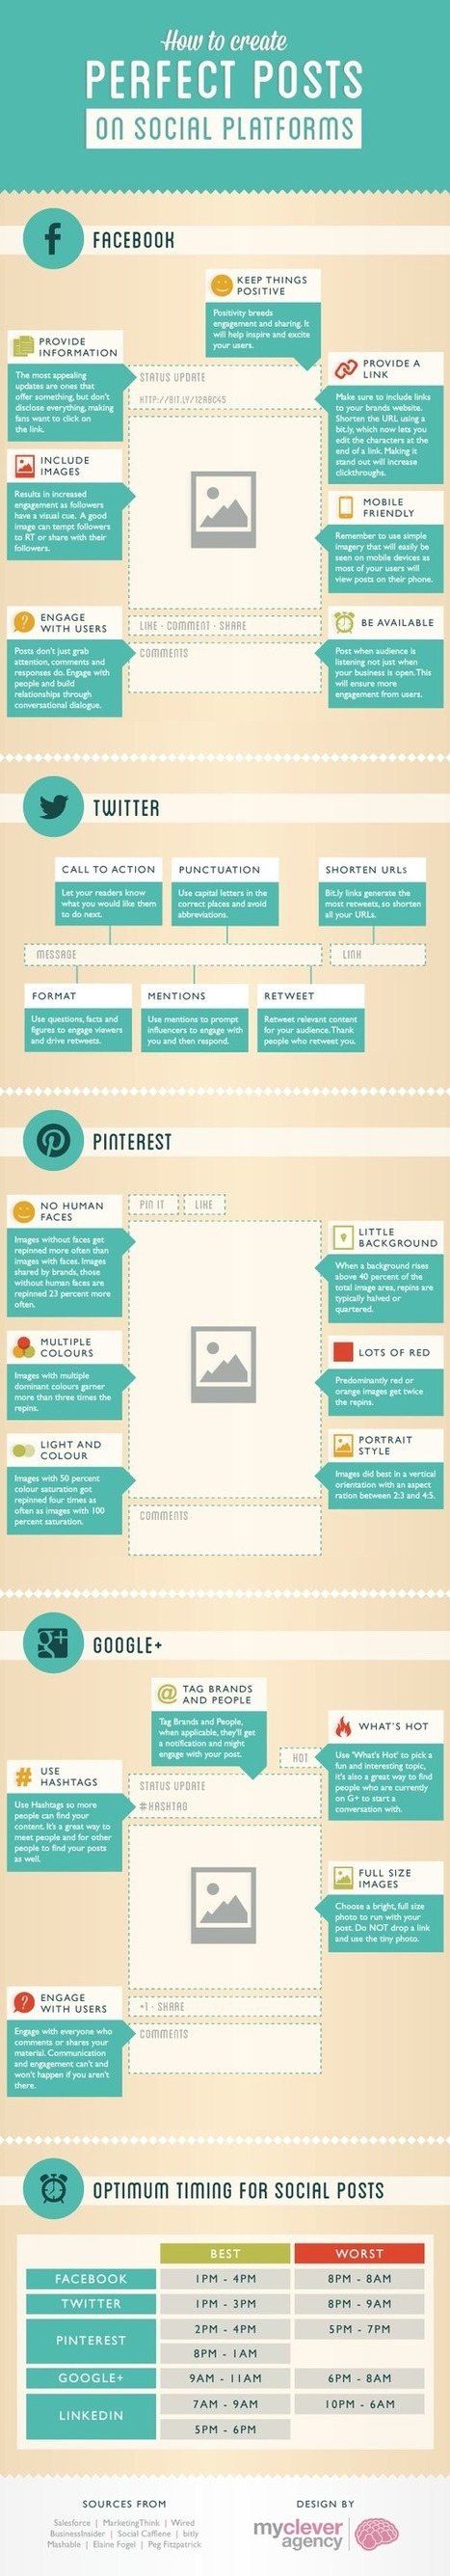 How to Create the Perfect Post on Social Media [INFOGRAPHIC] | Social Media Tips & News | Scoop.it